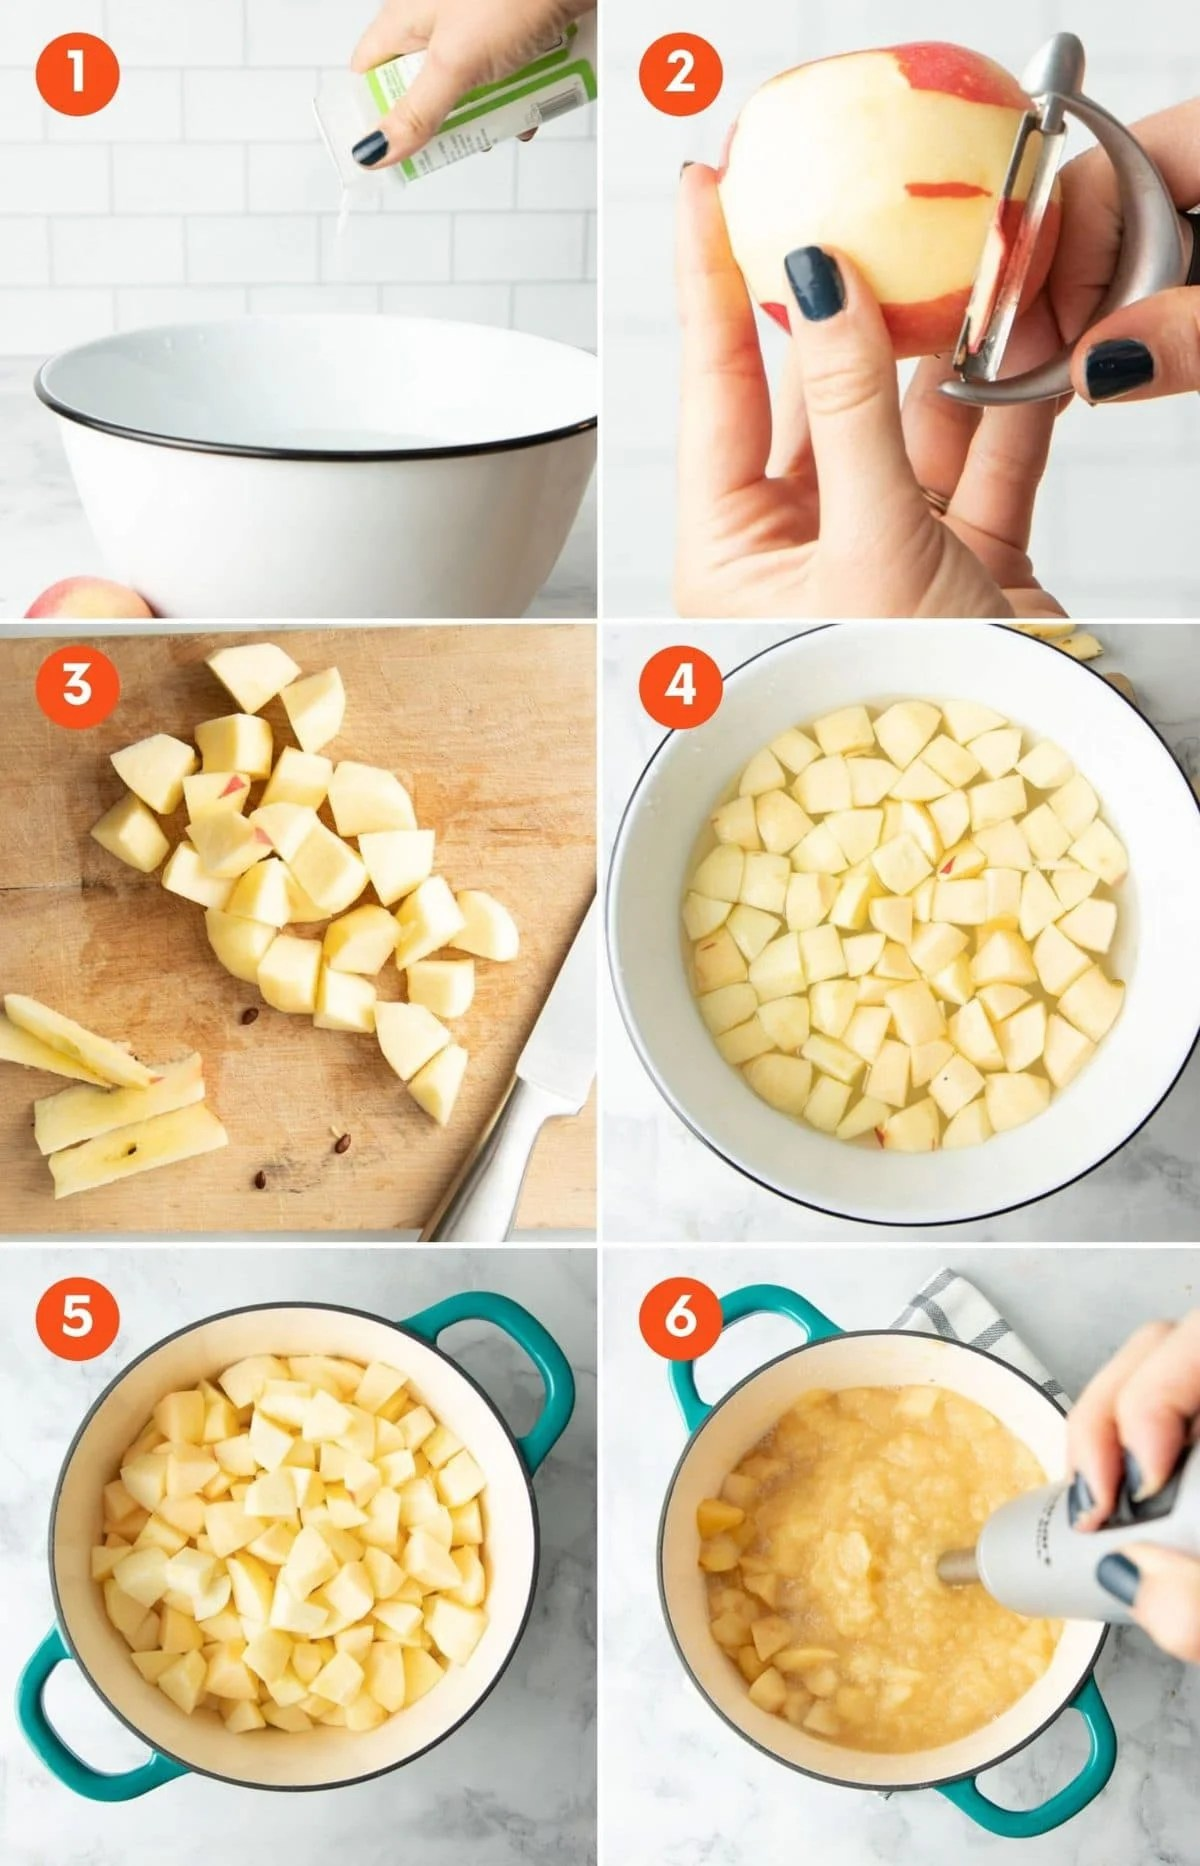 Collage showing six steps to making homemade applesauce.